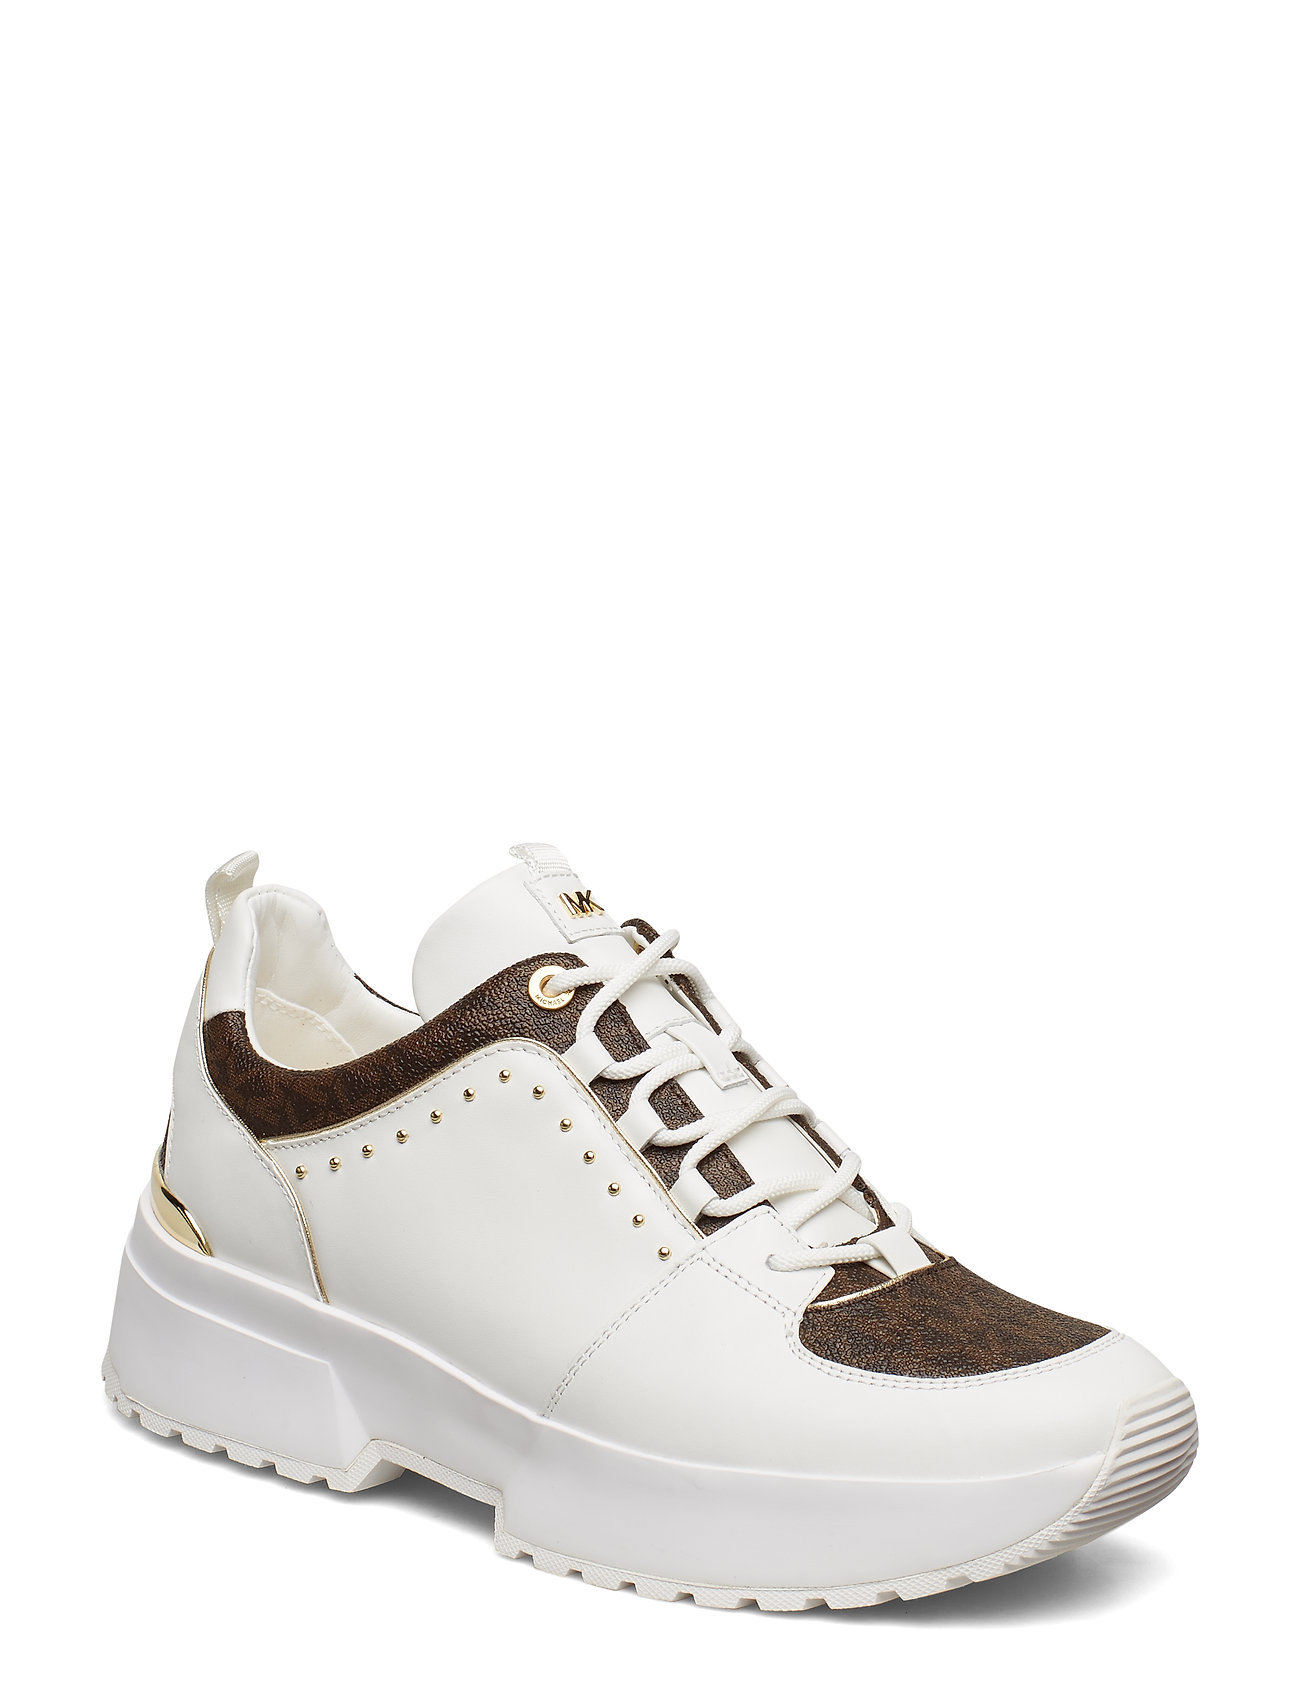 Michael Kors Shoes COSMO TRAINER - OP WHT/BROWN